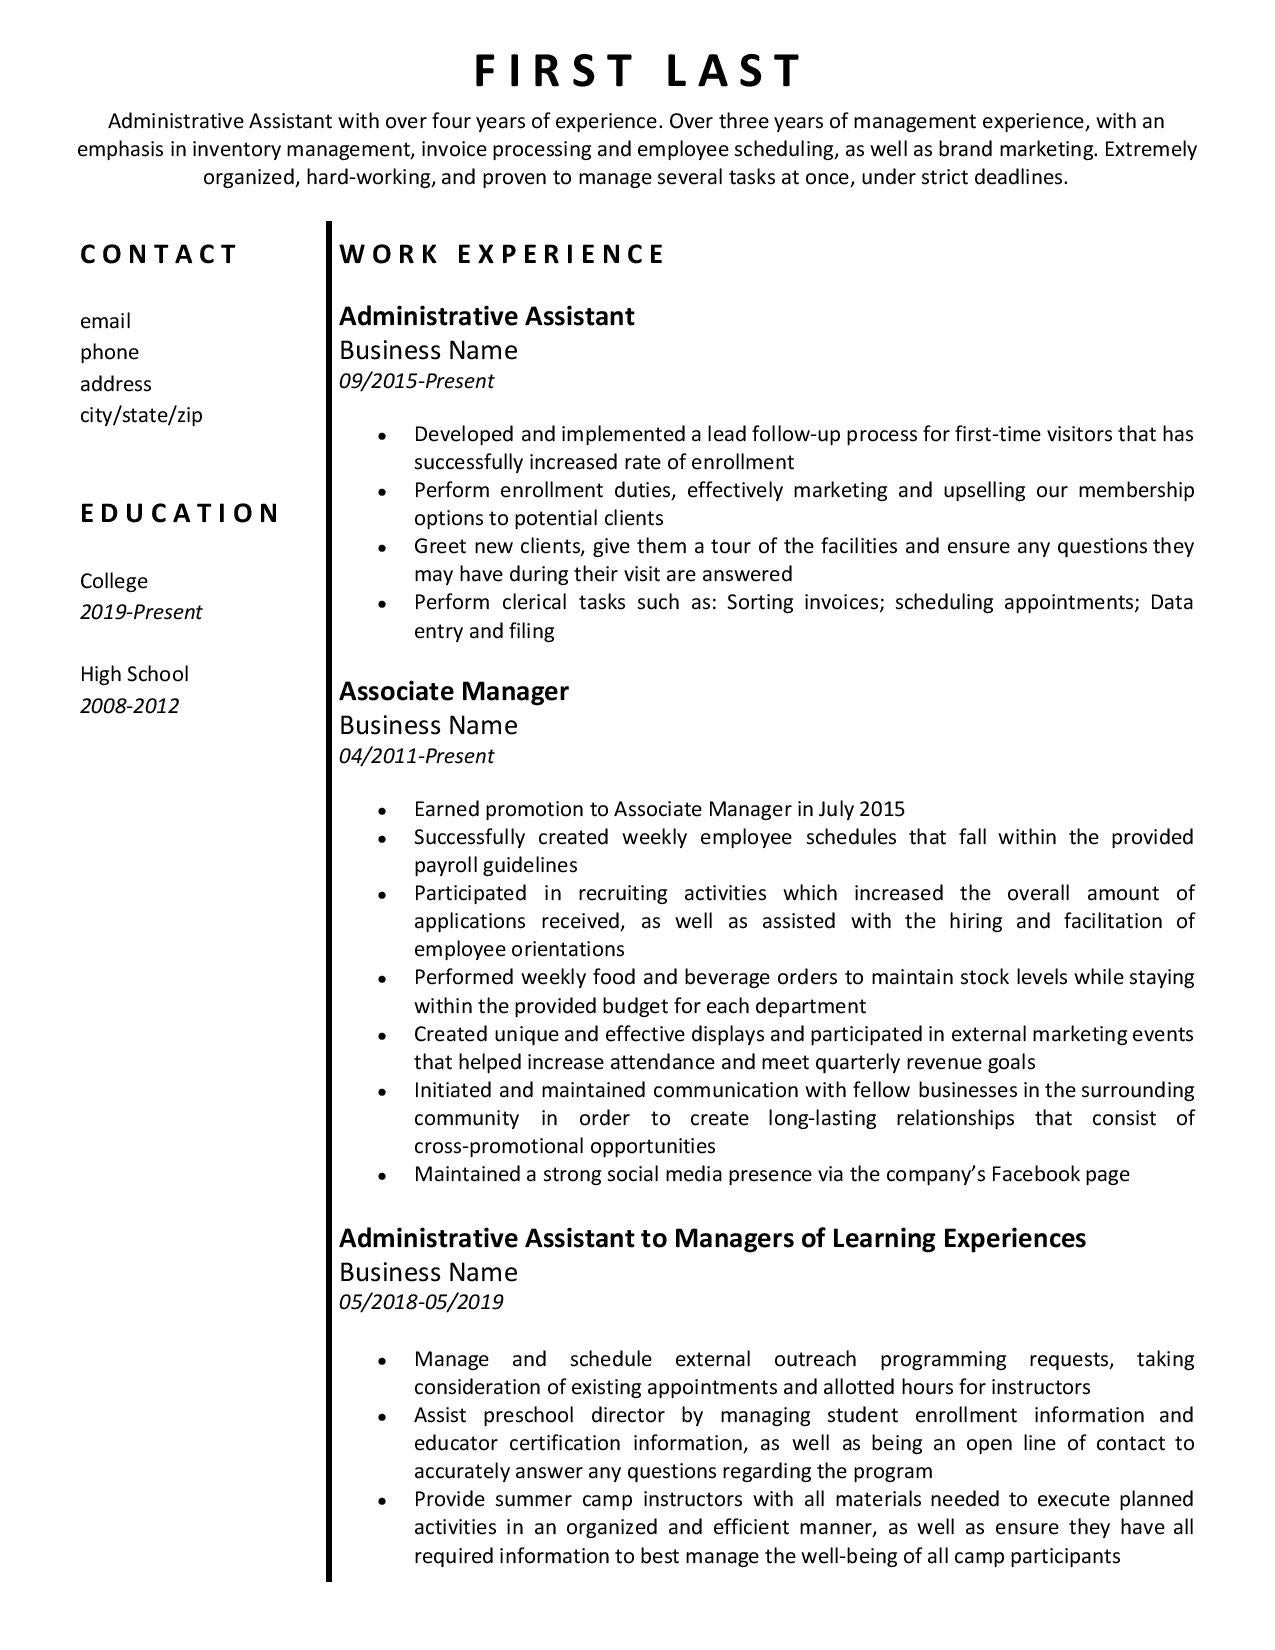 Sample Resume with Multiple Positions at Same Company Help! – Multiple Positions within Same Company and On/off …